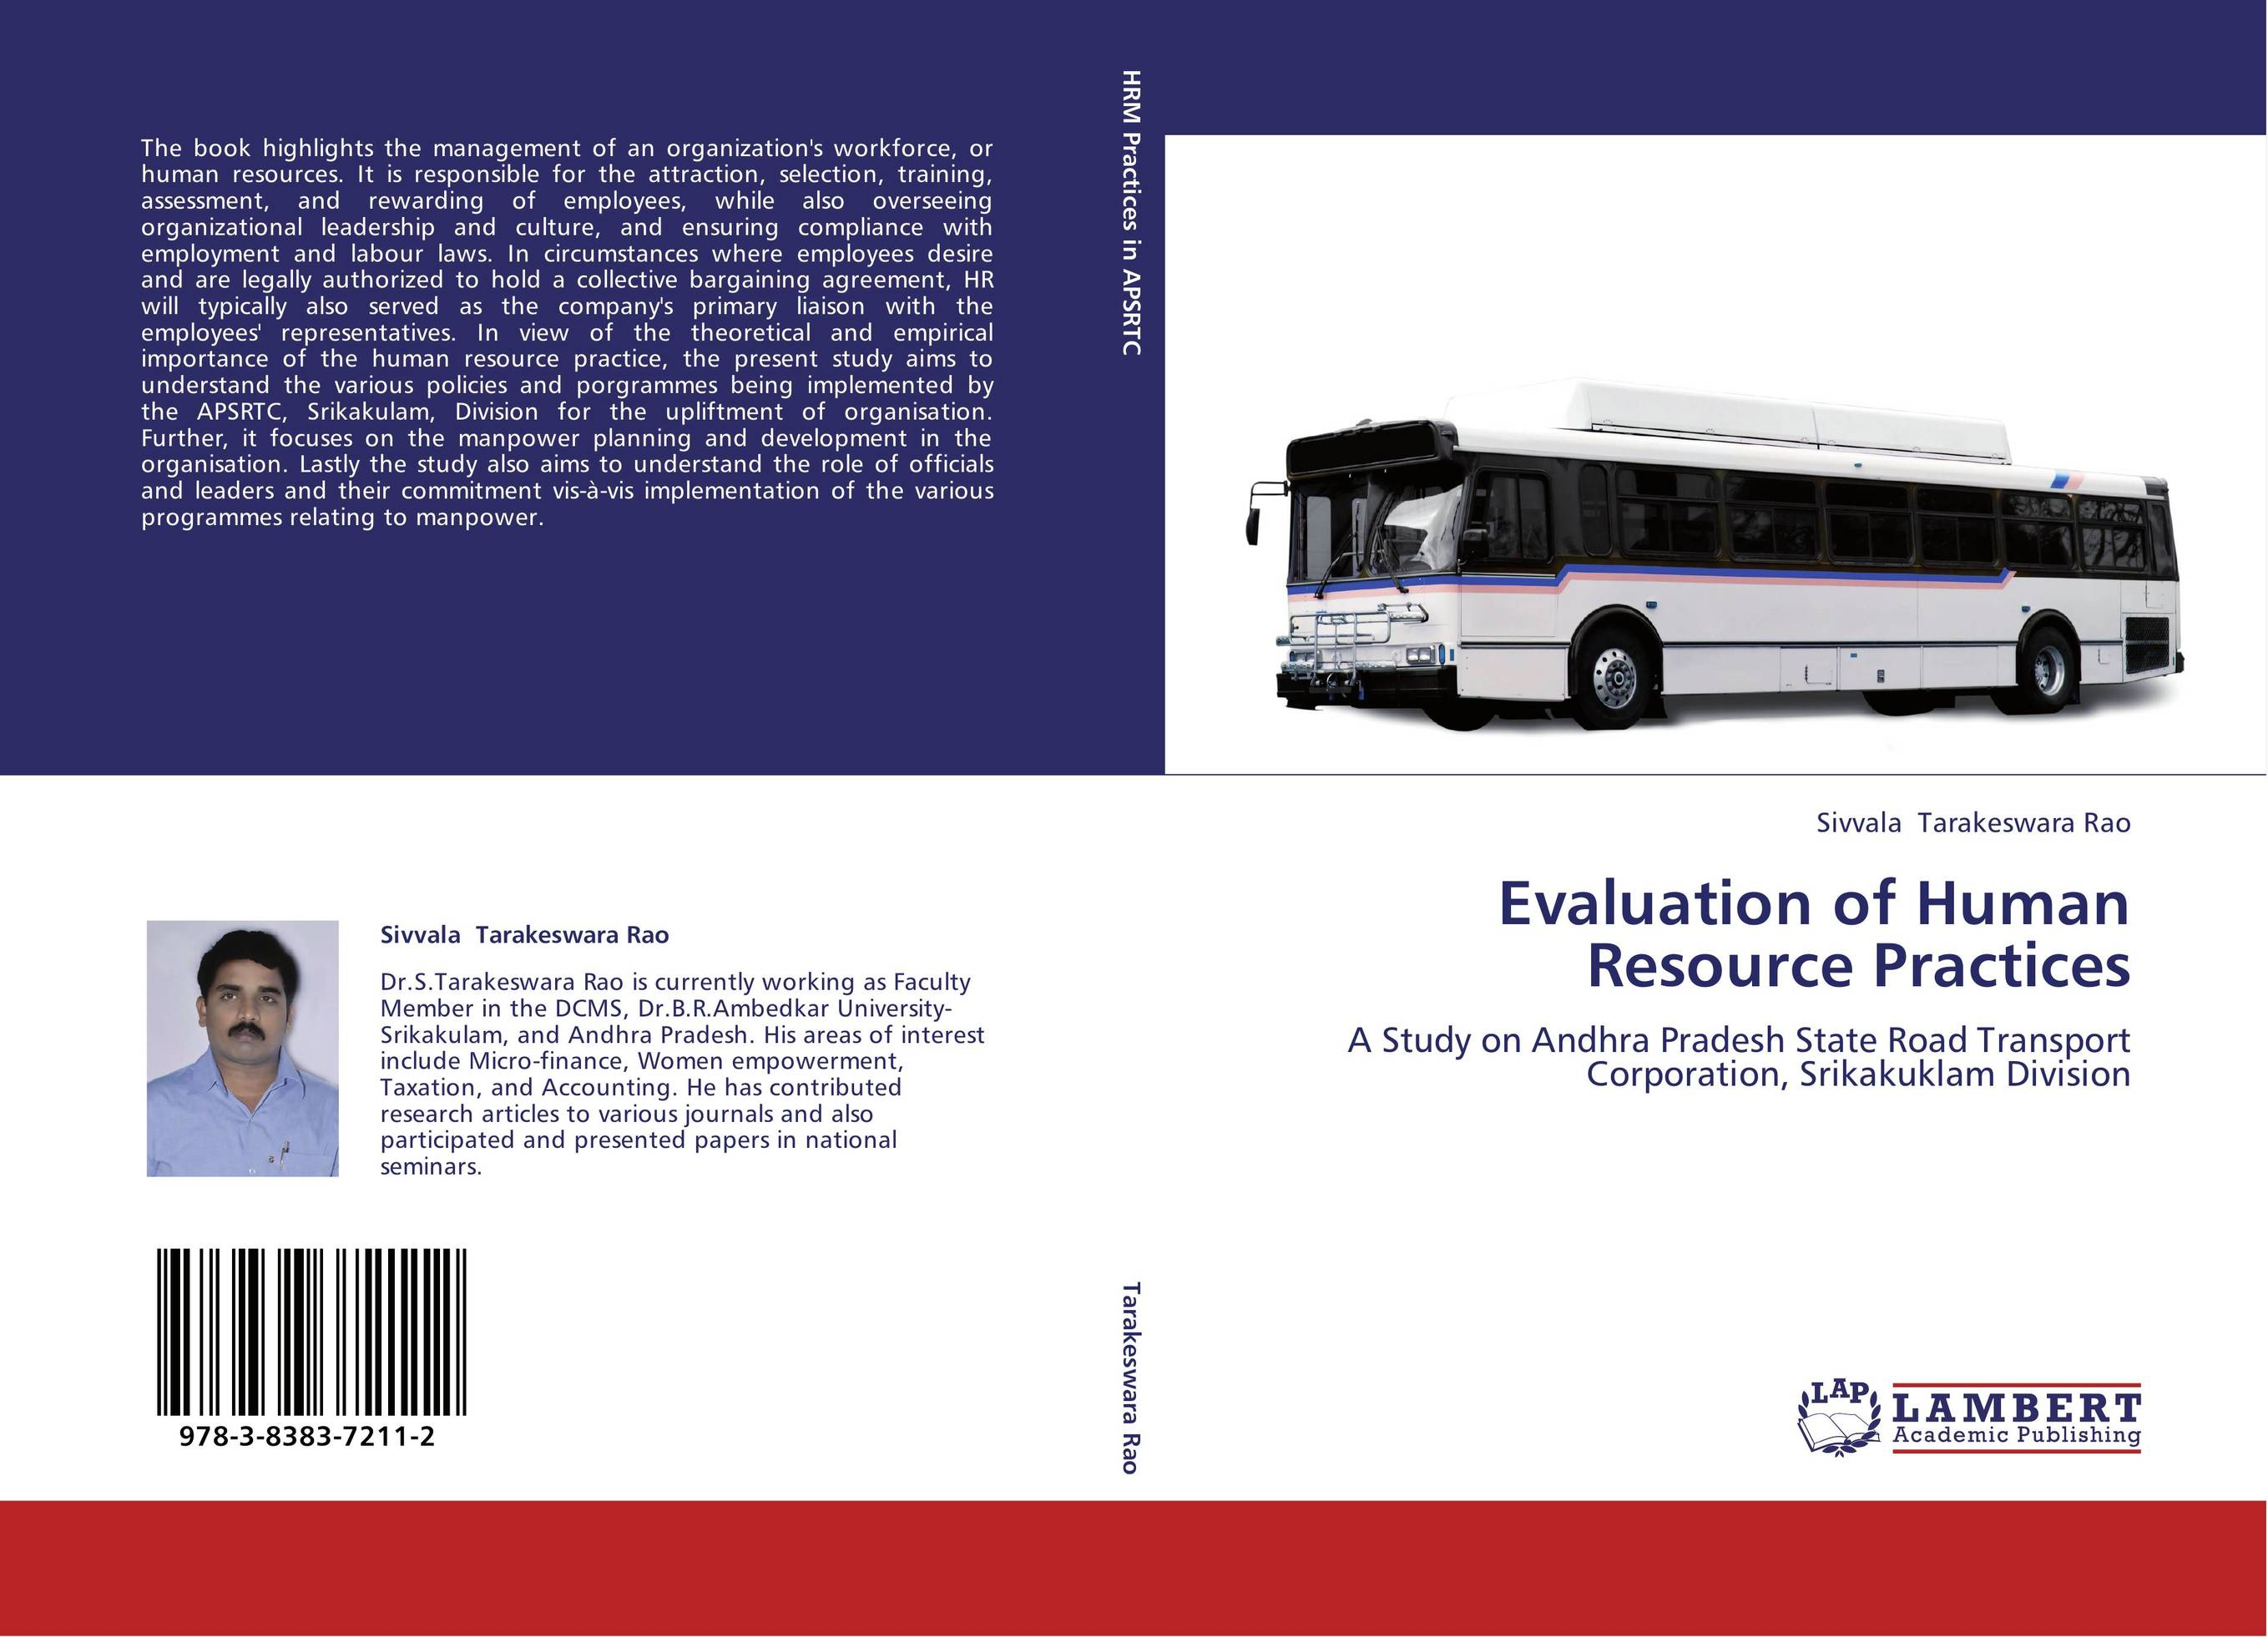 human resource management in pakistan South asian journal of human resources management is a peer-reviewed scholarly outlet for publications on hrm in and out of south asia it includes countries that are members of the south asian association for regional cooperation (saarc), namely, afghanistan, bangladesh, bhutan, india, maldives, nepal, pakistan, and sri lanka.